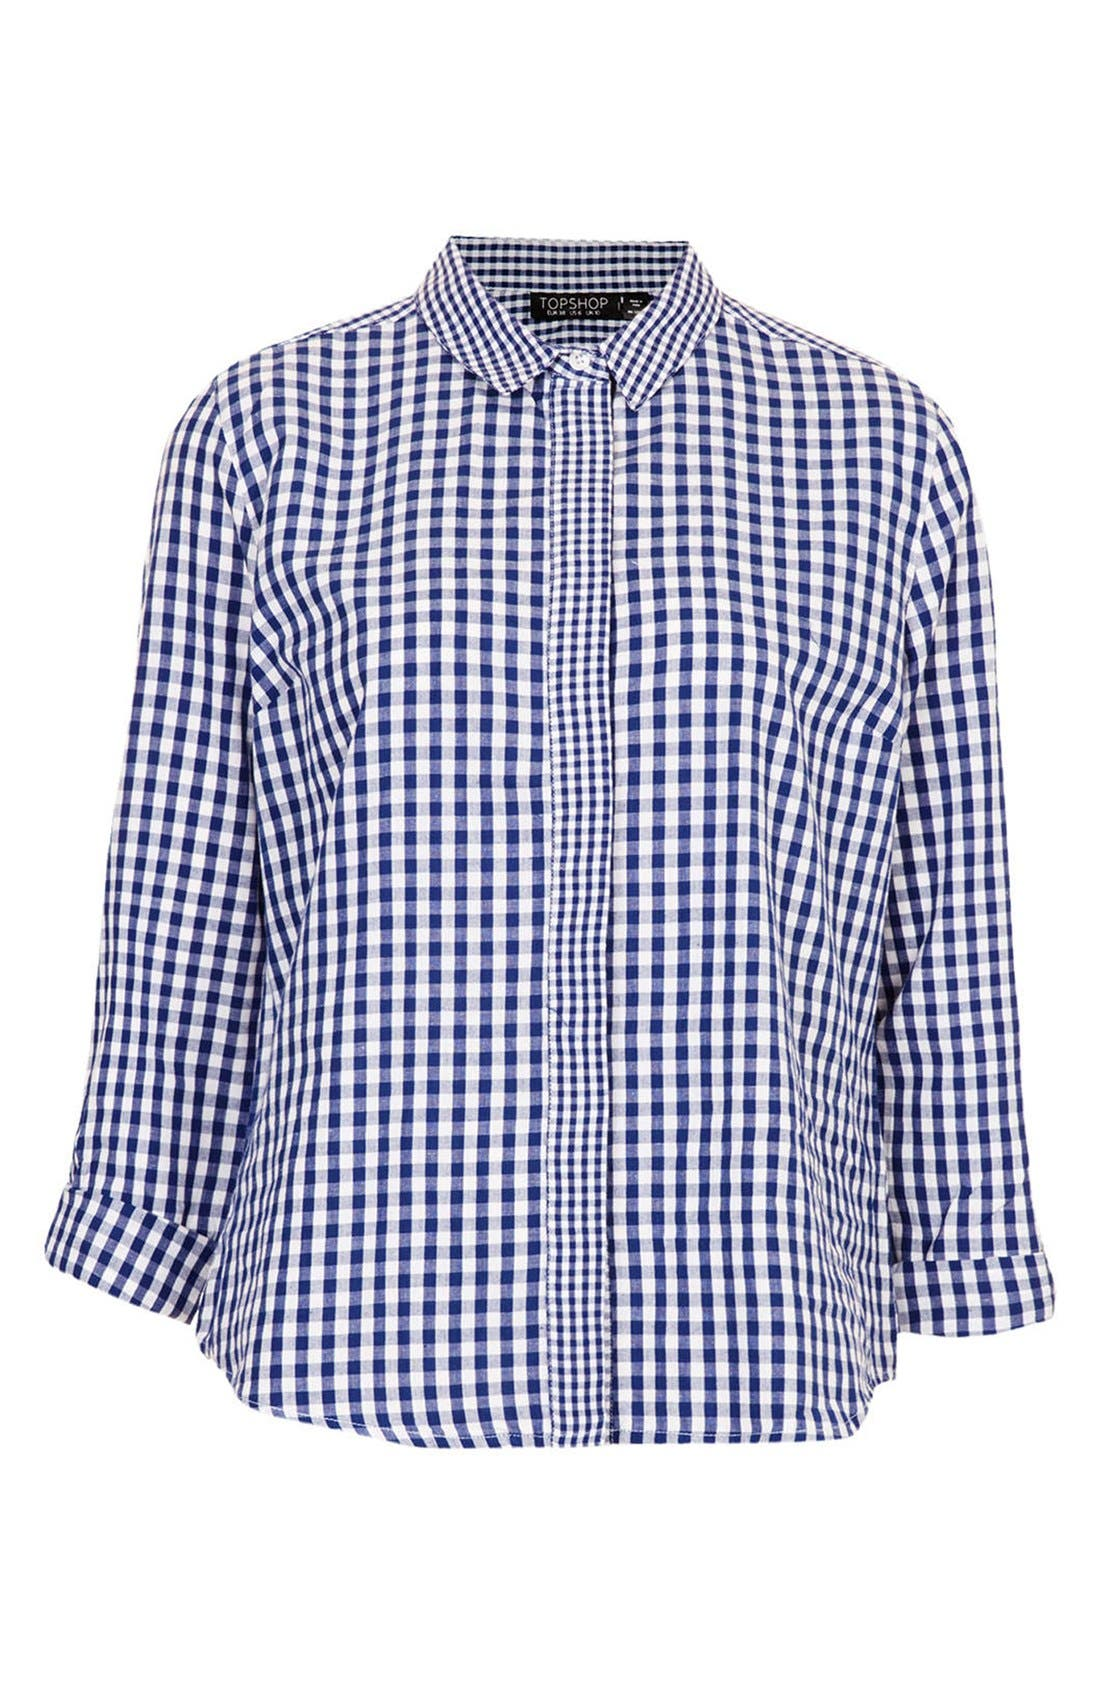 Alternate Image 3  - Topshop Mix Gingham Print Cotton Shirt